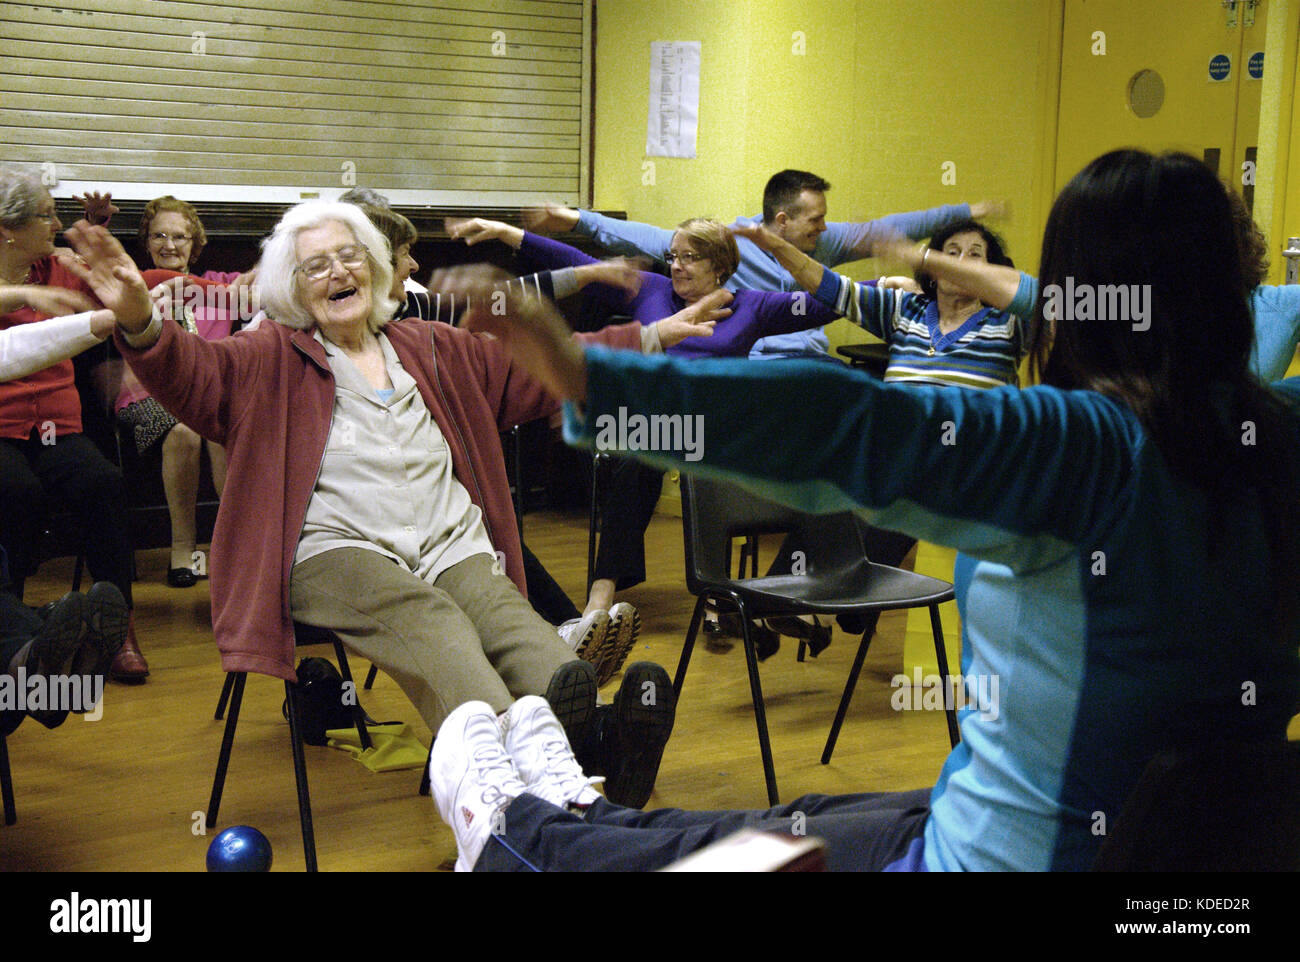 Over 50's, elderly club trying out gentle Zumba exercises at the Stephen's Hall in west London. - Stock Image